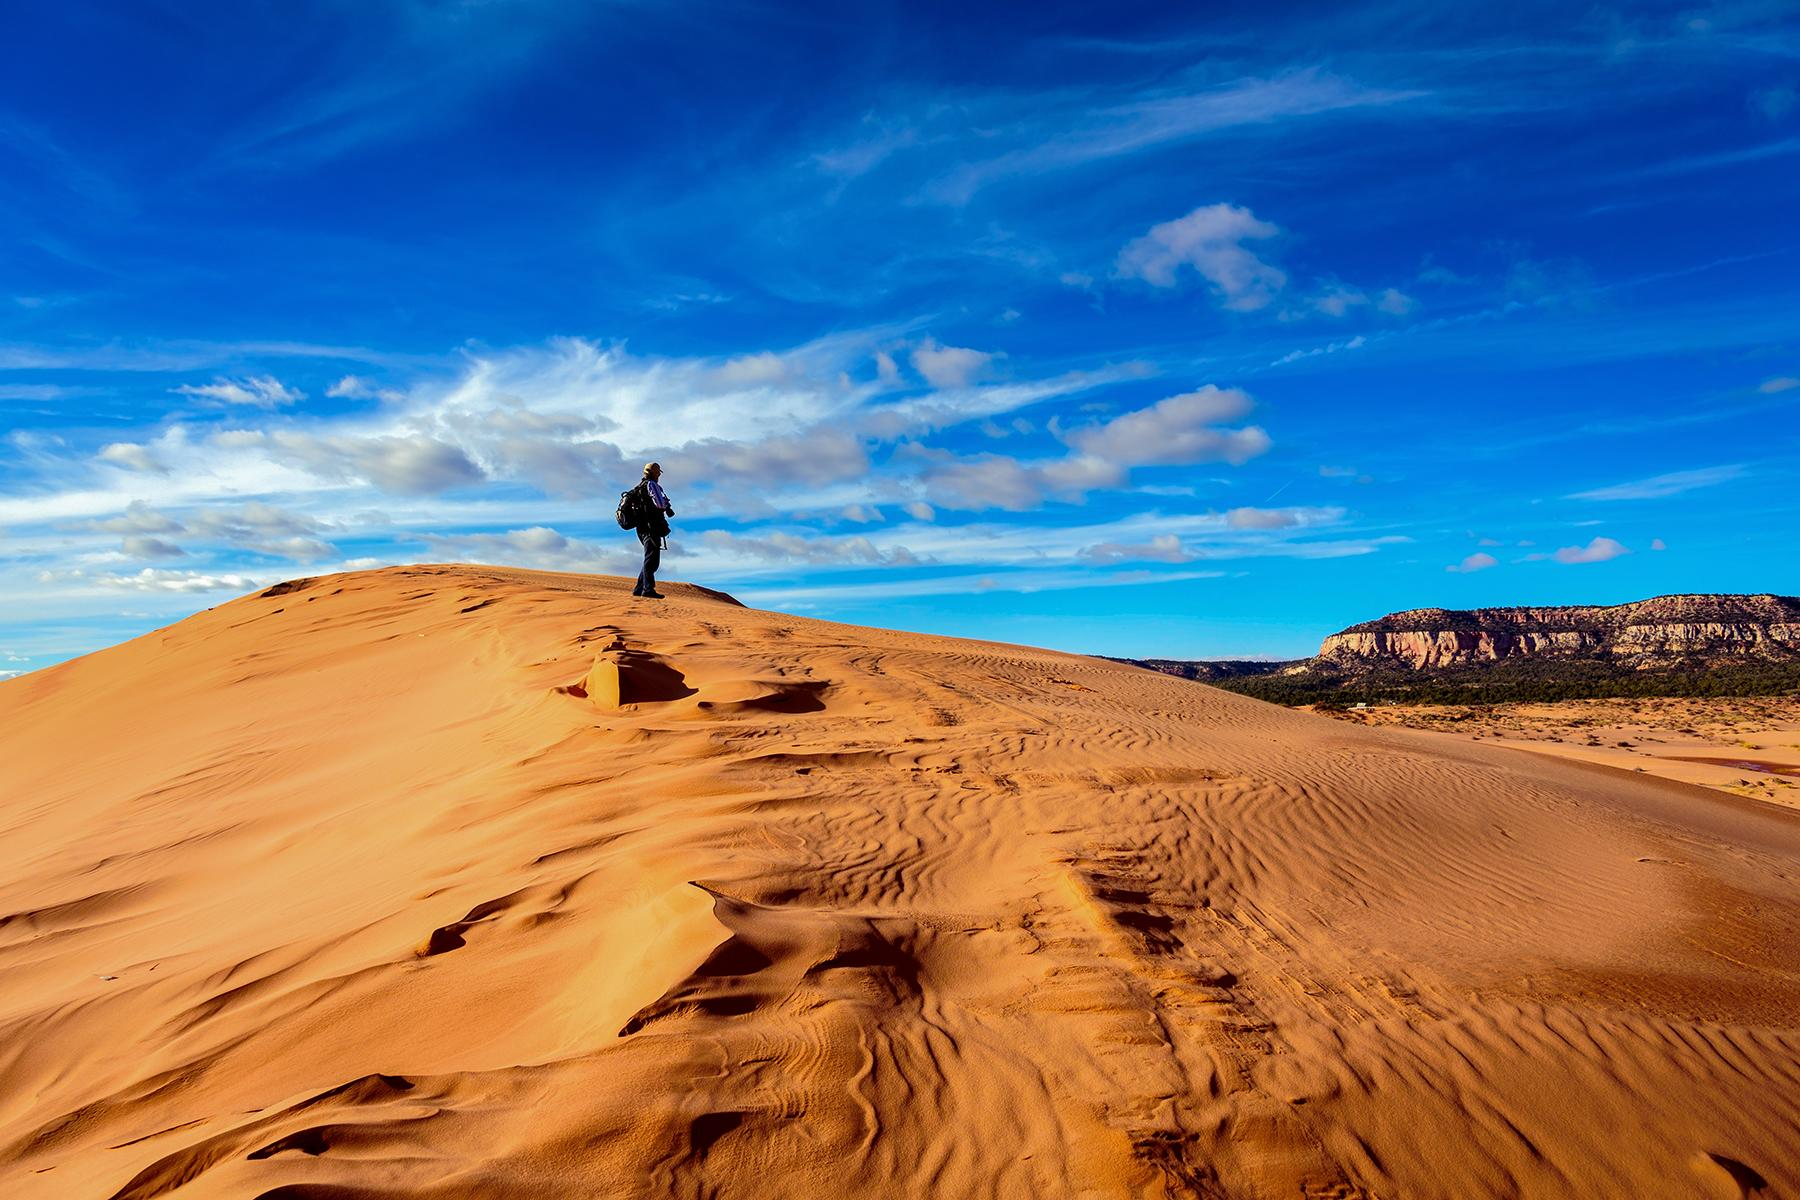 U S  Sand Dunes to Visit, Board, Climb, and Hike